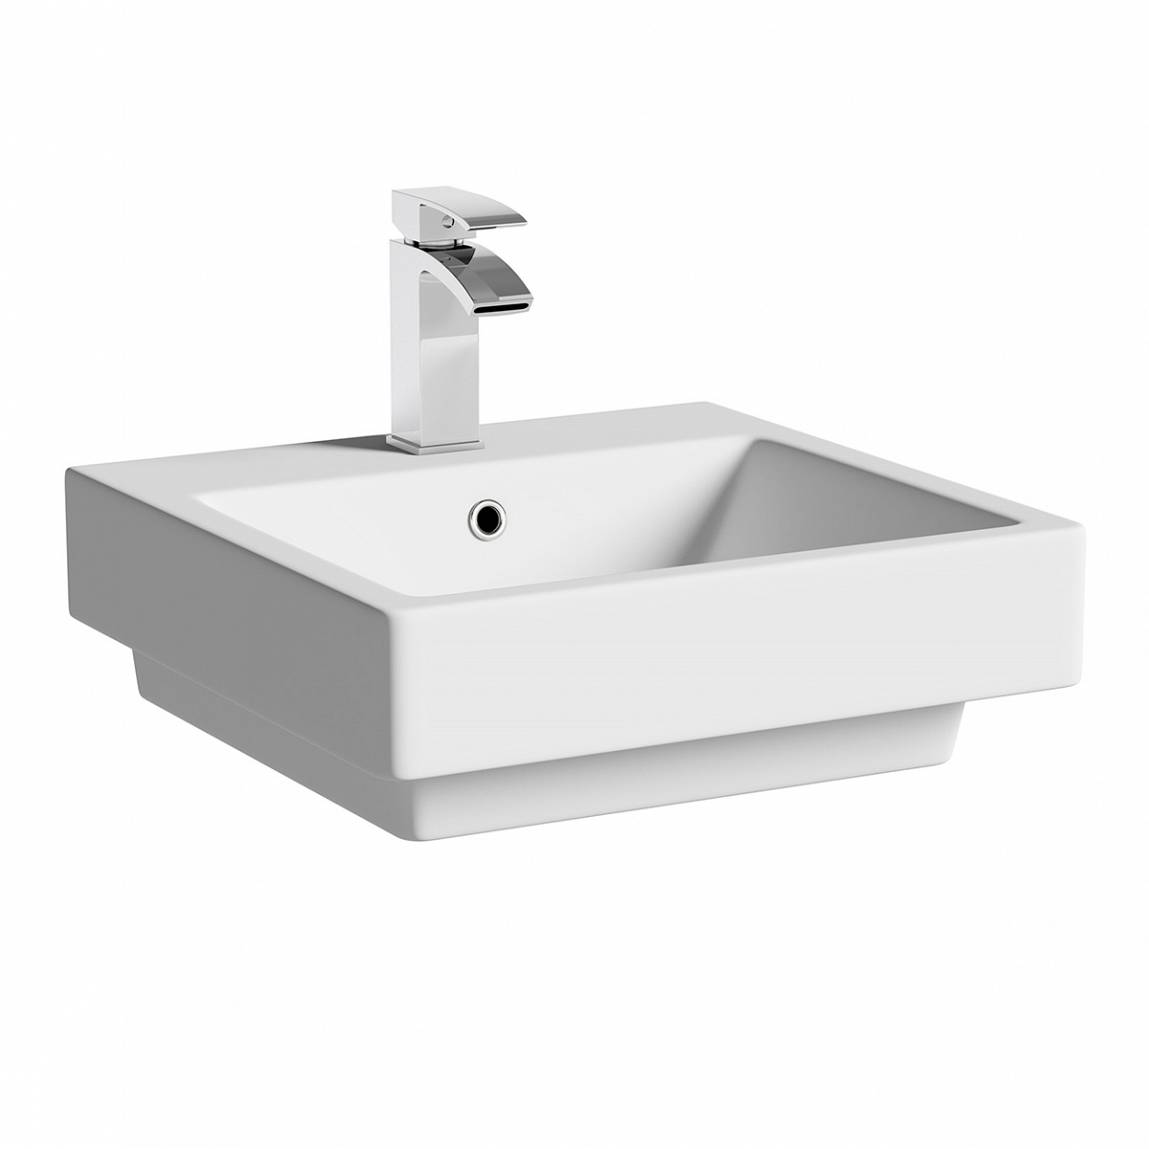 Image of Marcos Counter Top Basin